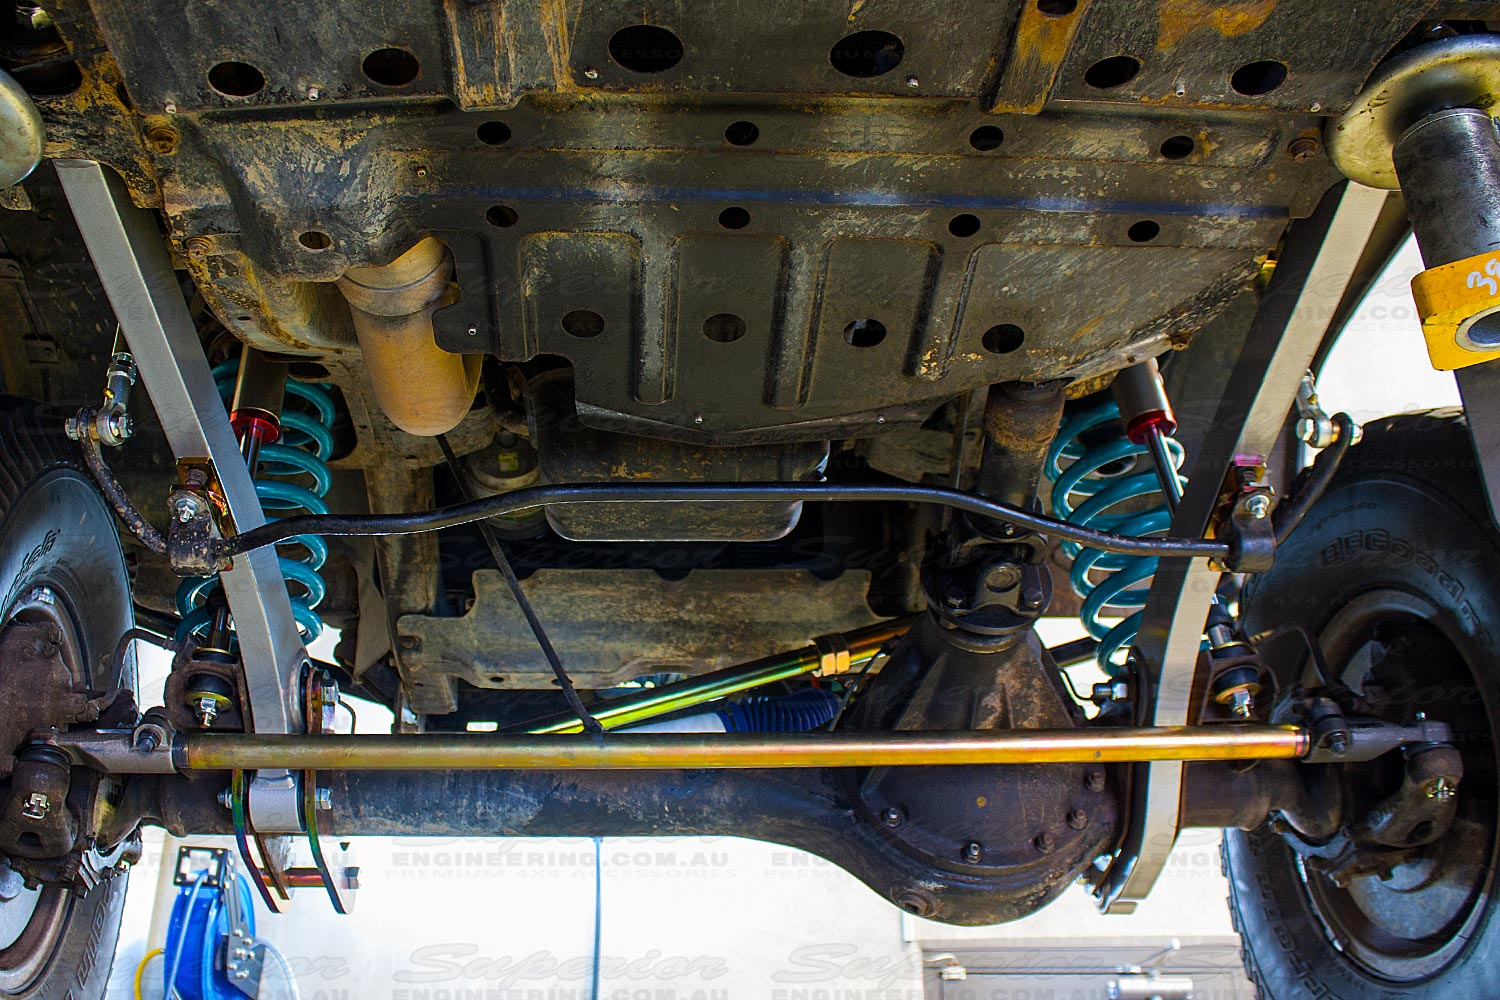 Superior Engineering tie rod fitted to a 4wd vehicle